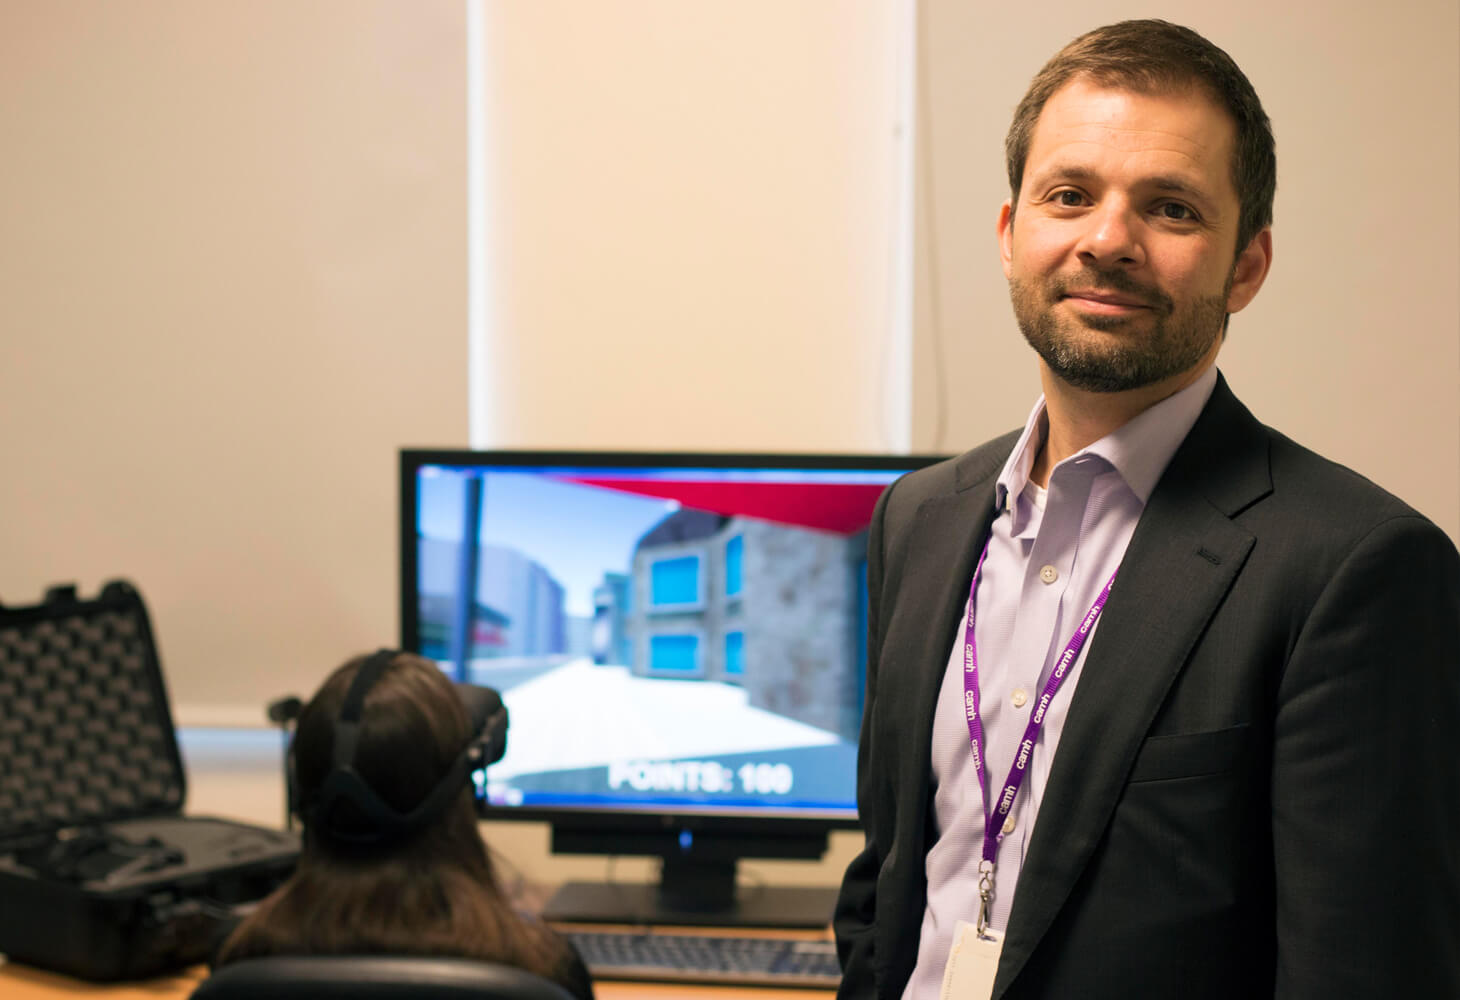 CAMH clinician standing in front of computer screen